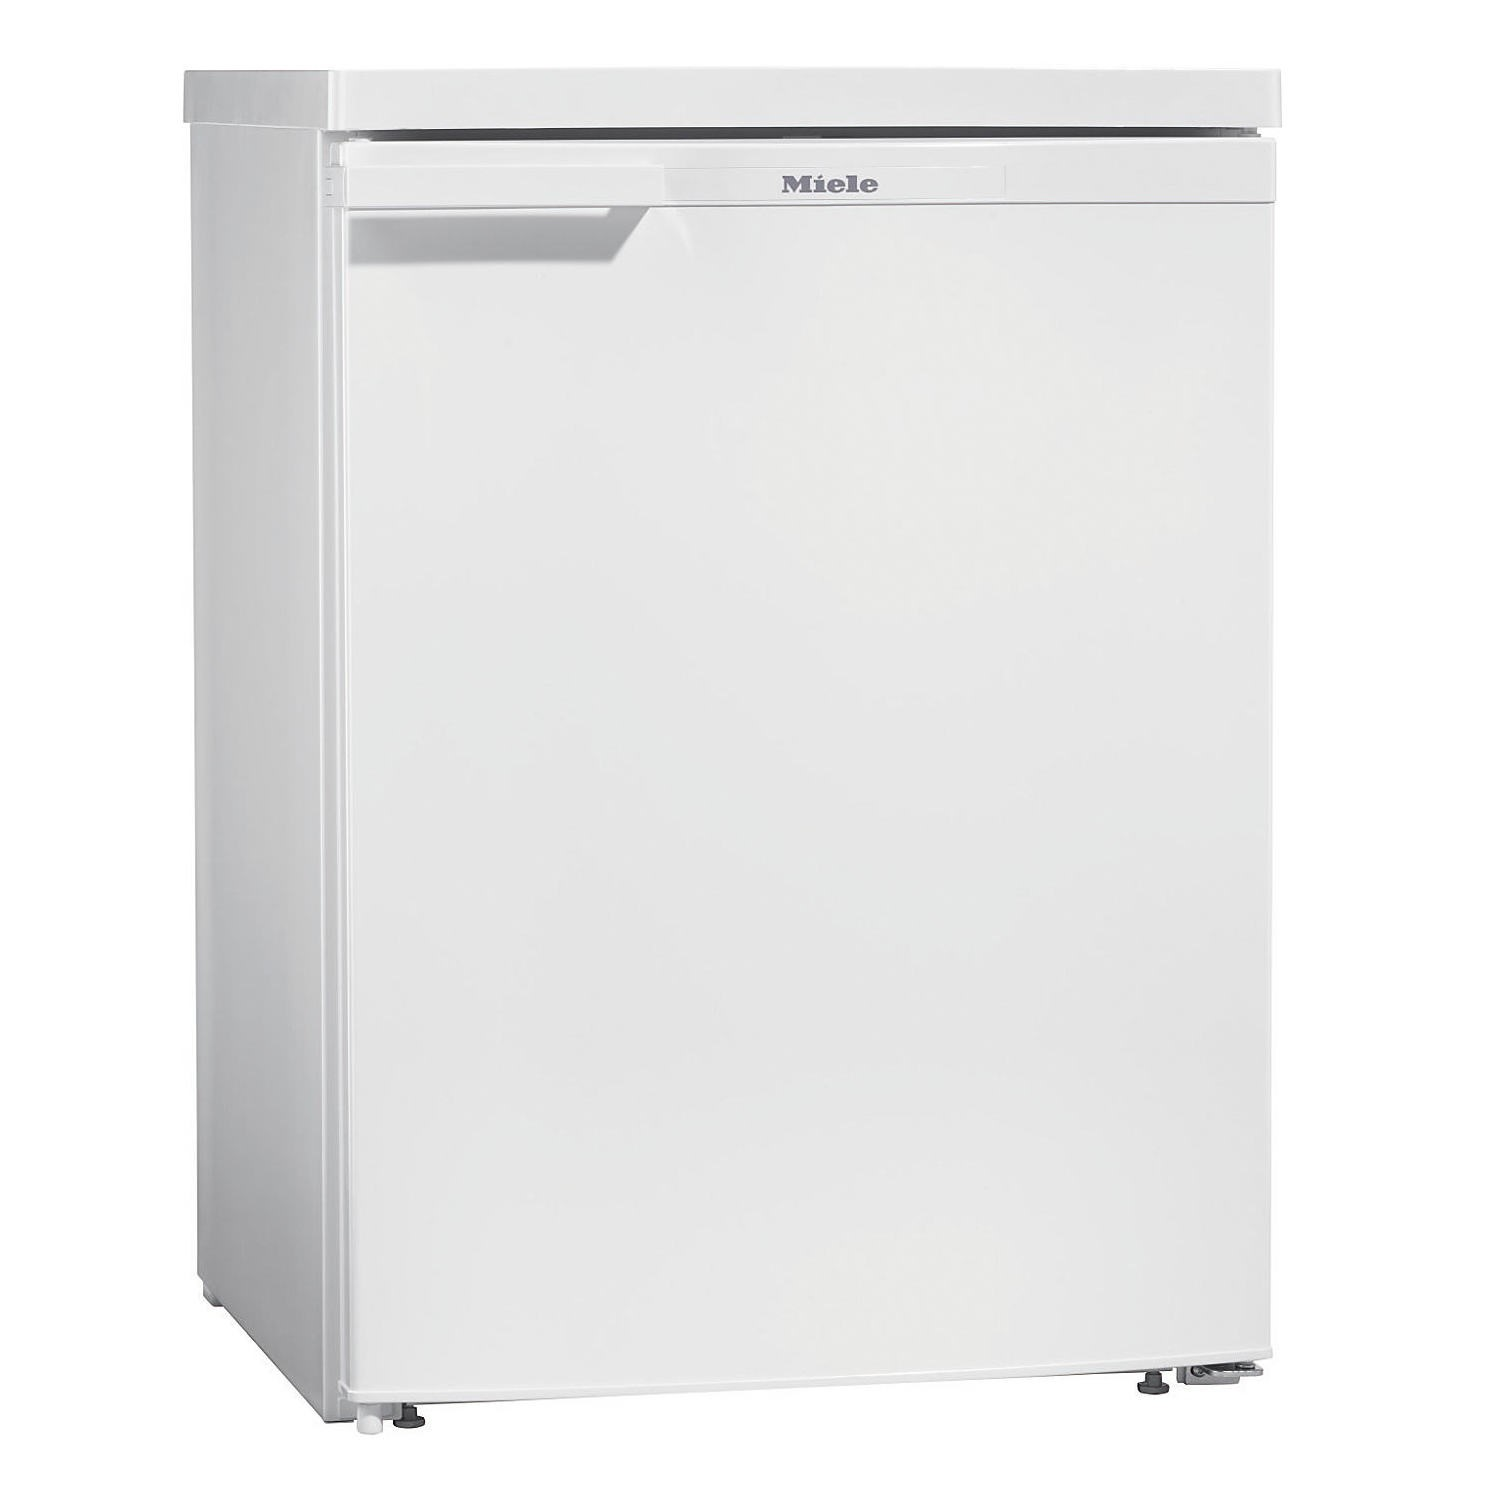 Miele K12012s 2 55cm Wide Freestanding Under Counter